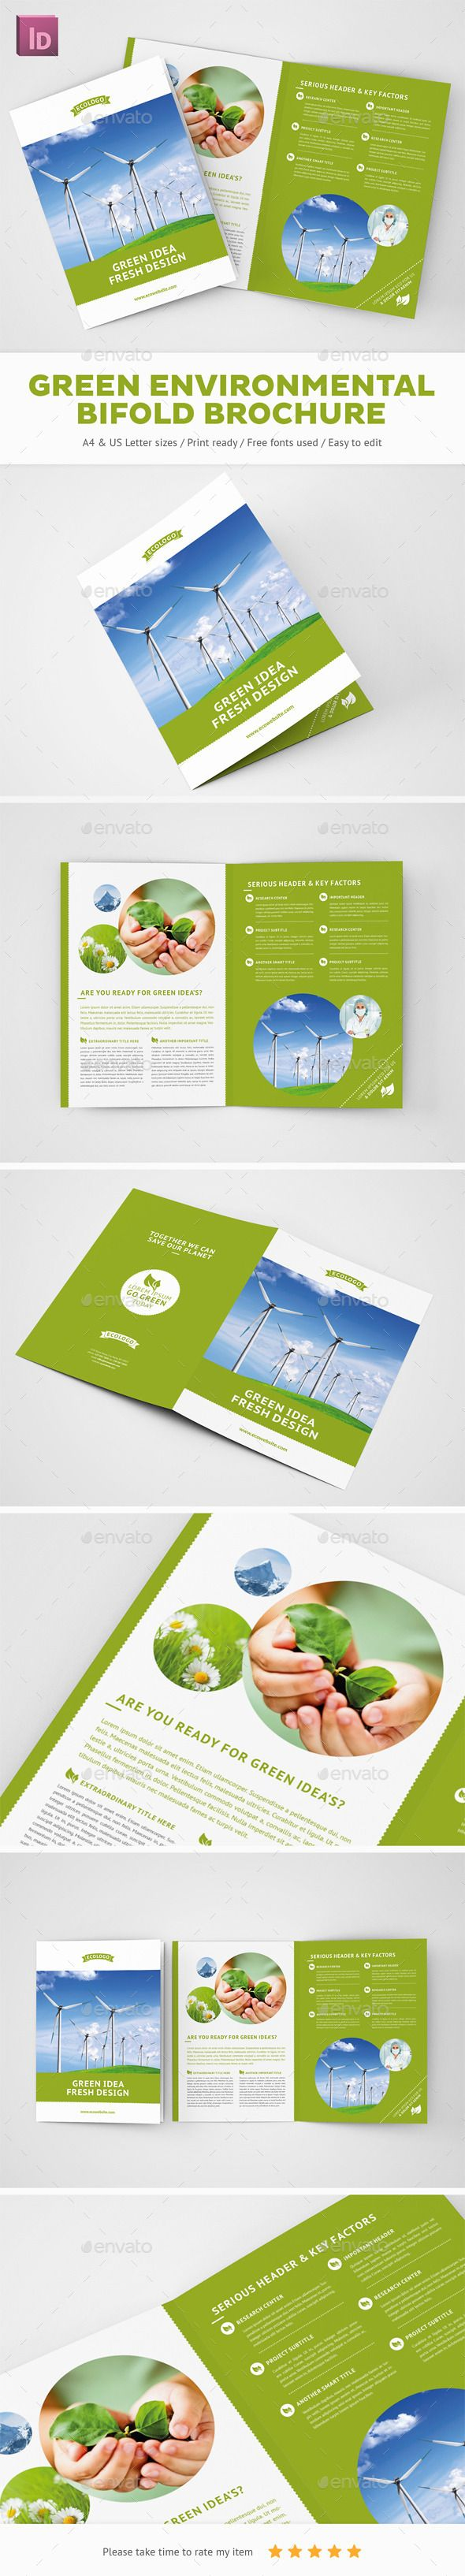 Green Environmental Bifold Brochure - Brochures Print Templates